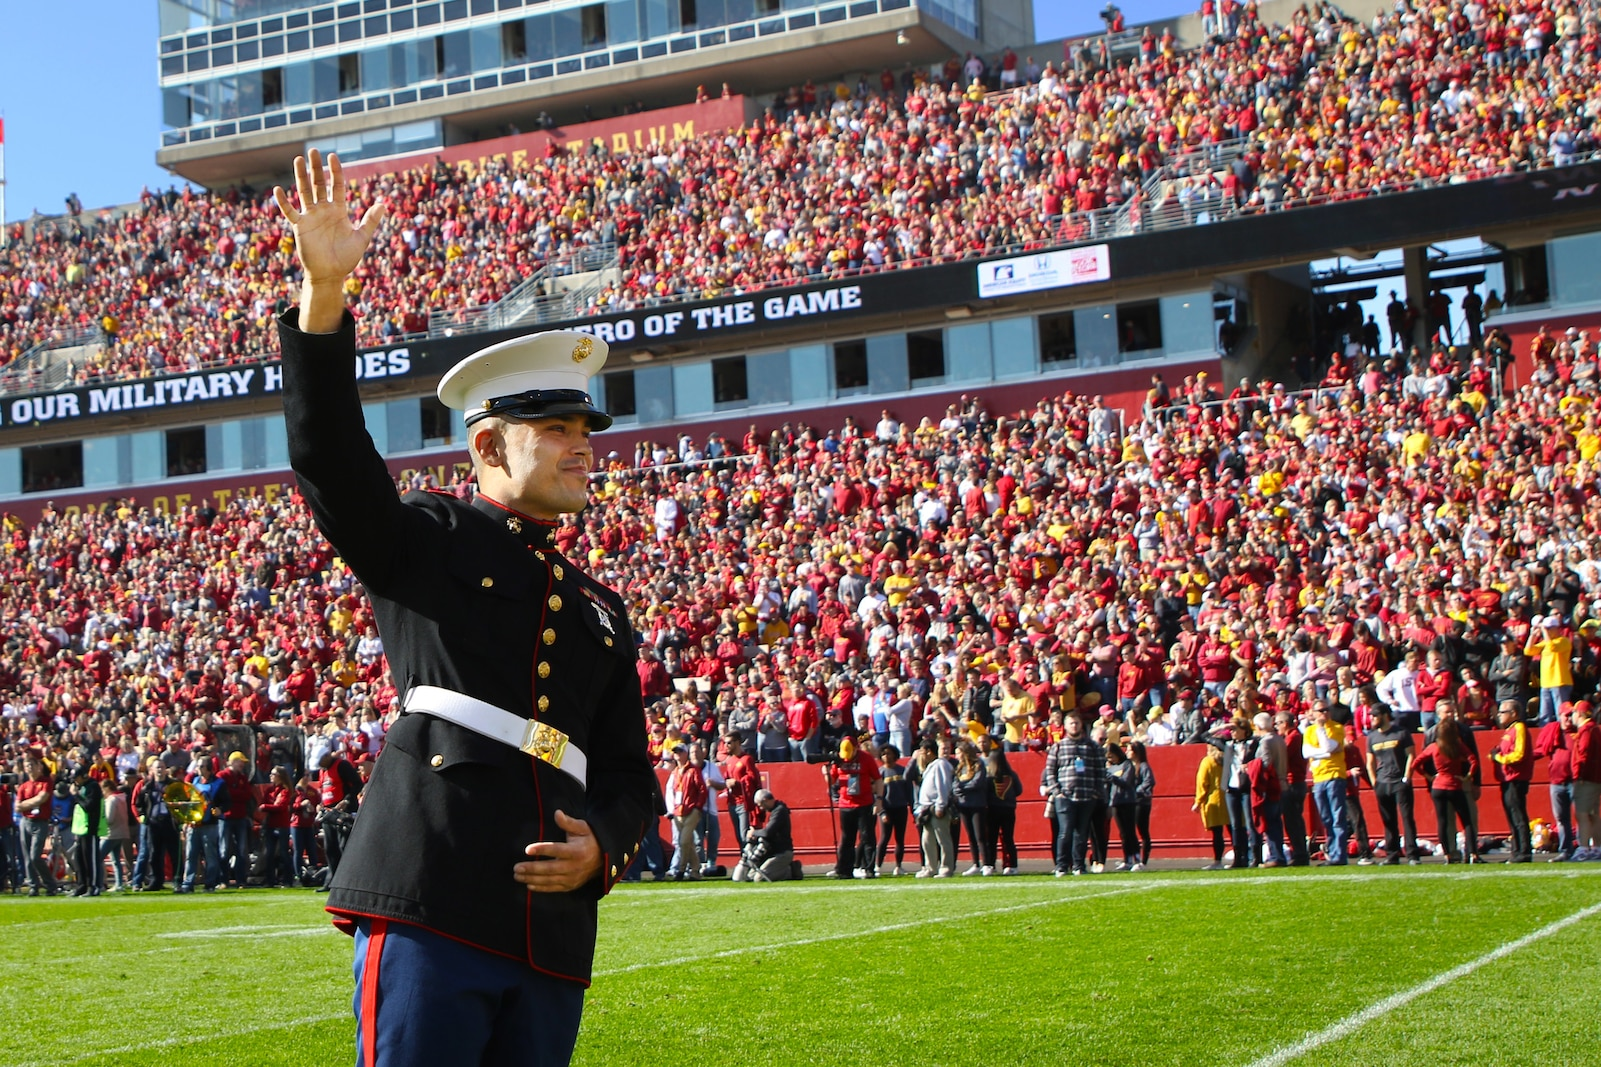 """Chicago, Ill. native, Sgt. Nicholas Rojas, administrative specialist with Marine Corps Recruiting Station Des Moines, Iowa, is recognized as the """"Hero of the Game"""" during the Iowa State University versus Texas Tech University football game at Jack Trice Stadium in Ames, Iowa, October 27, 2018."""